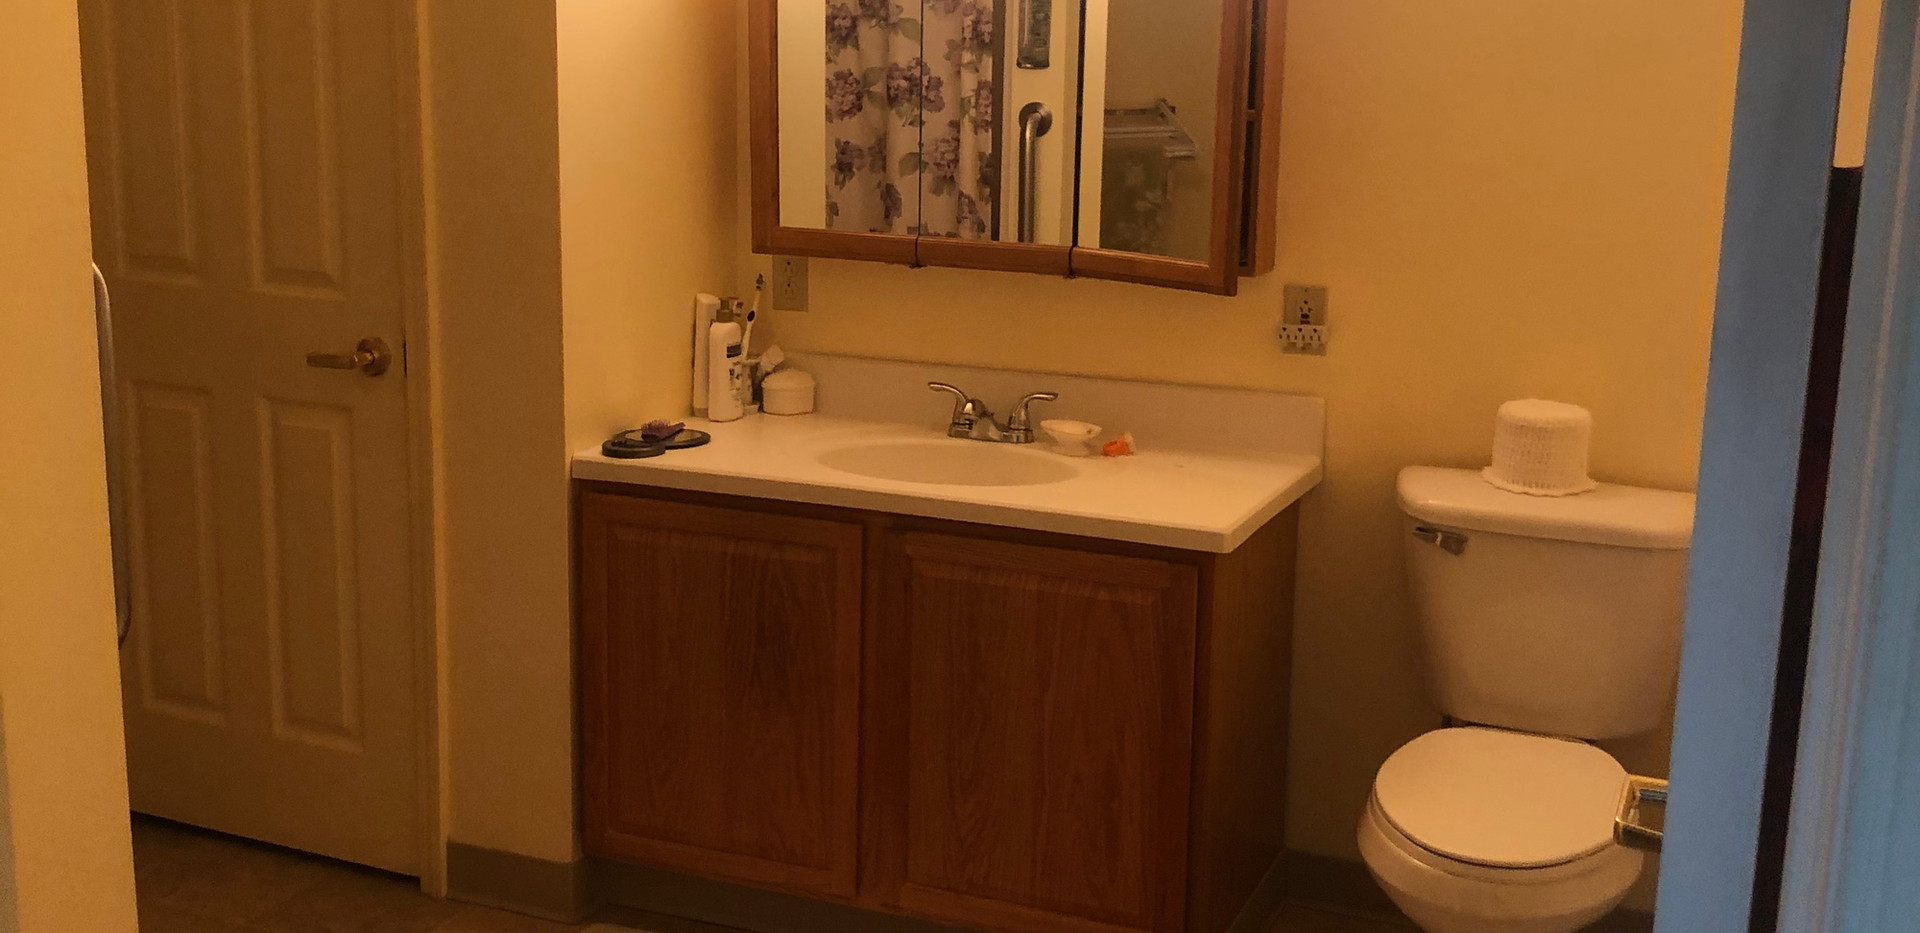 Bathroom 2 bedroom apartment vanity view